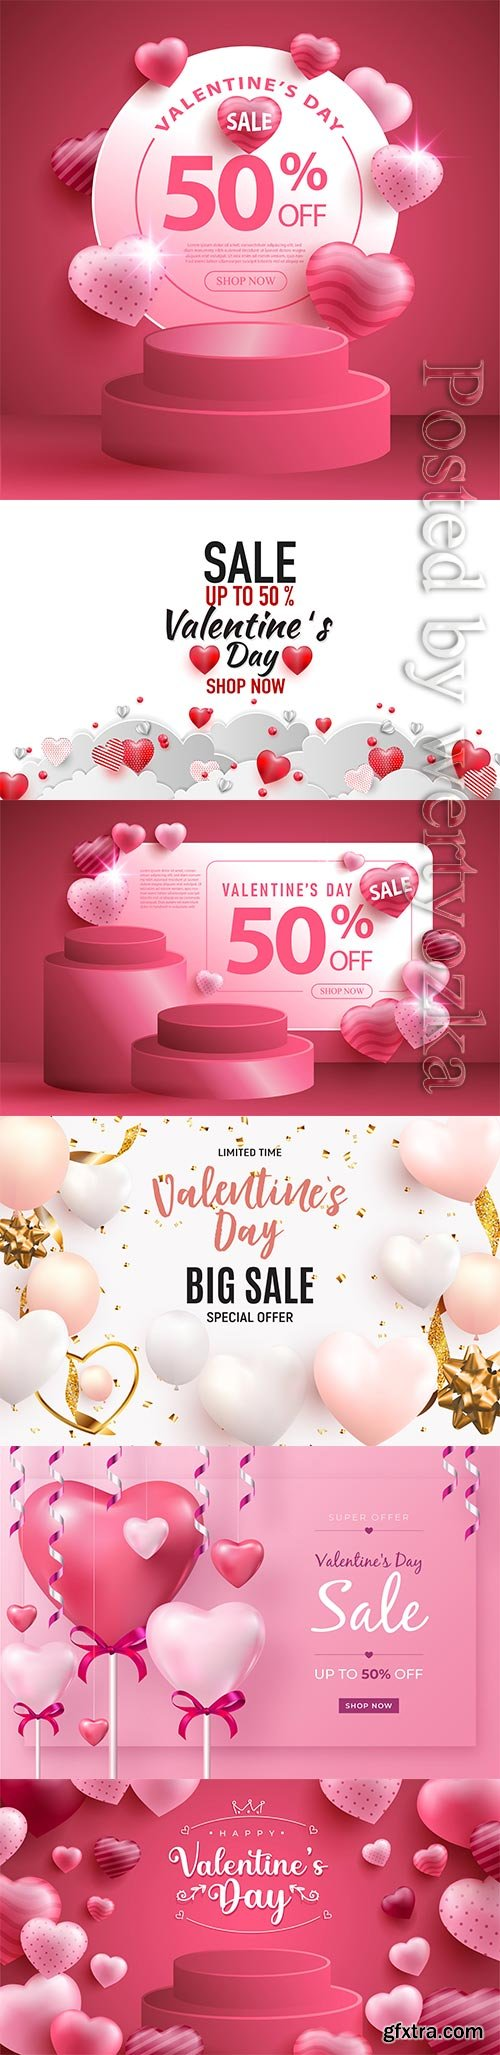 Sale happy valentine's day with realistic hearts